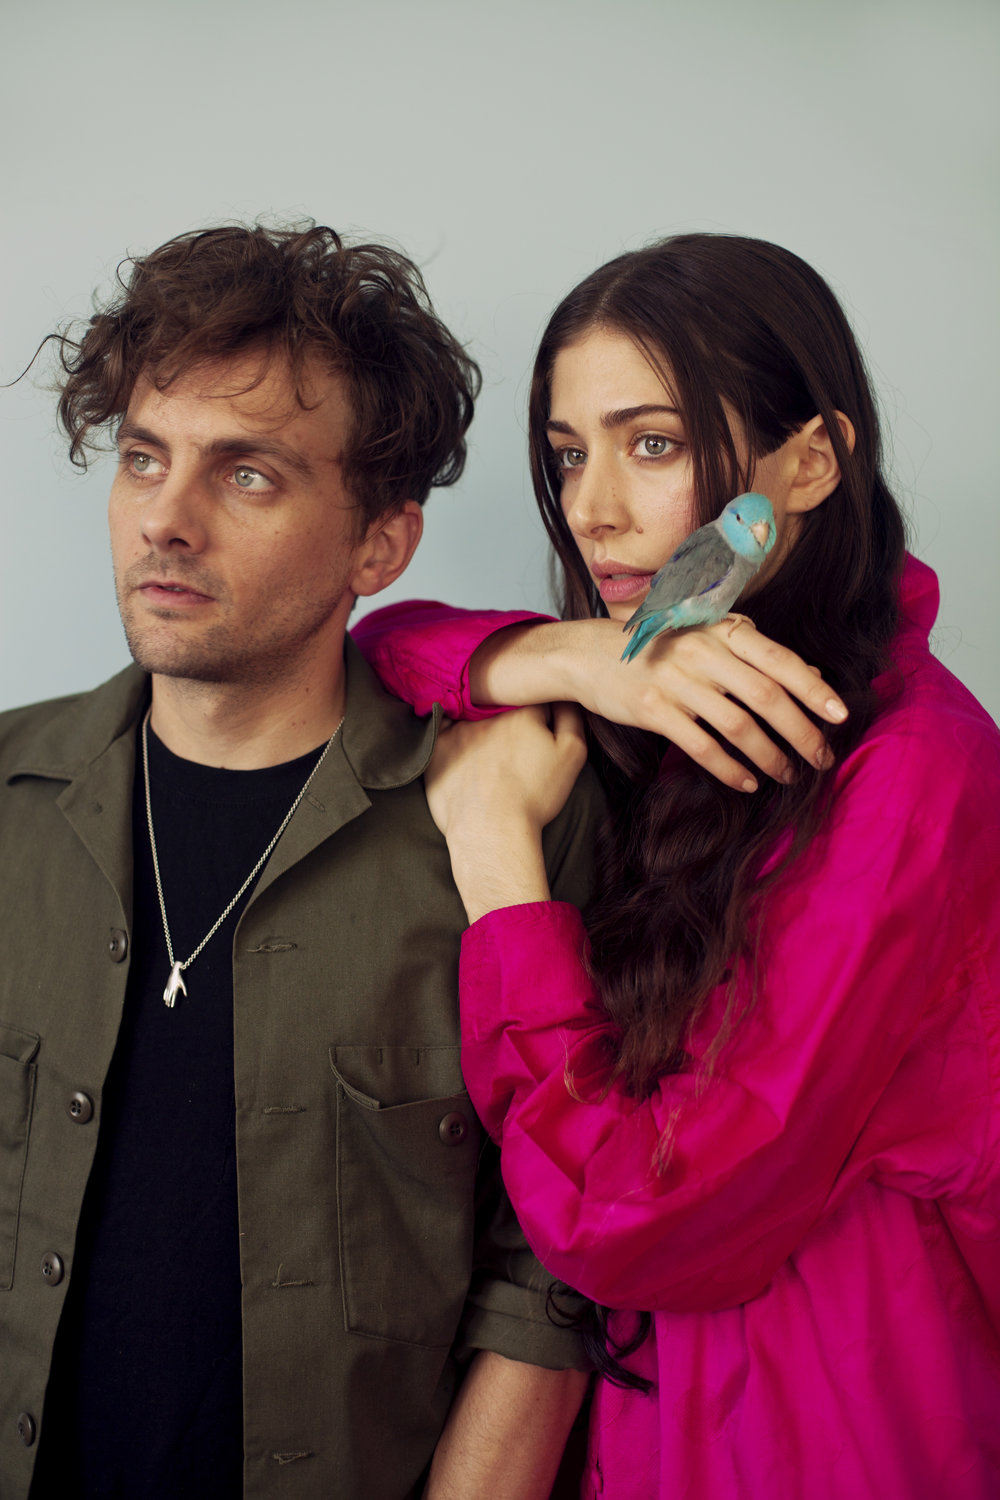 Chairlift for i-D